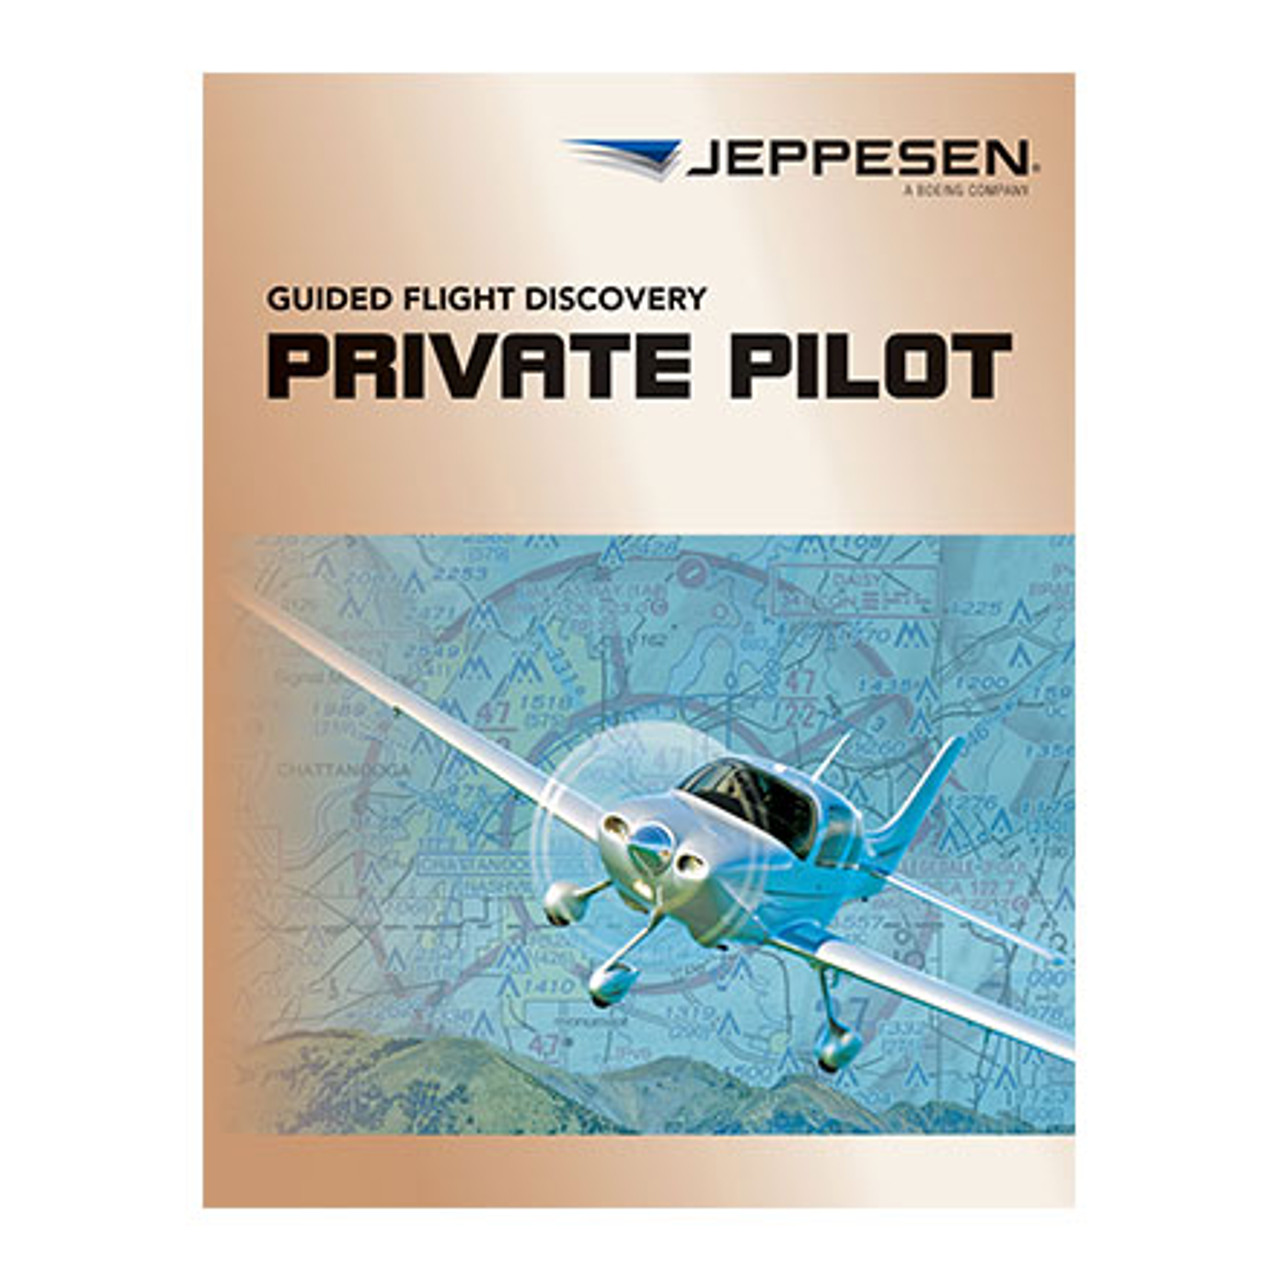 Jeppesen GFD Private Pilot Textbook - May 2018 Rev